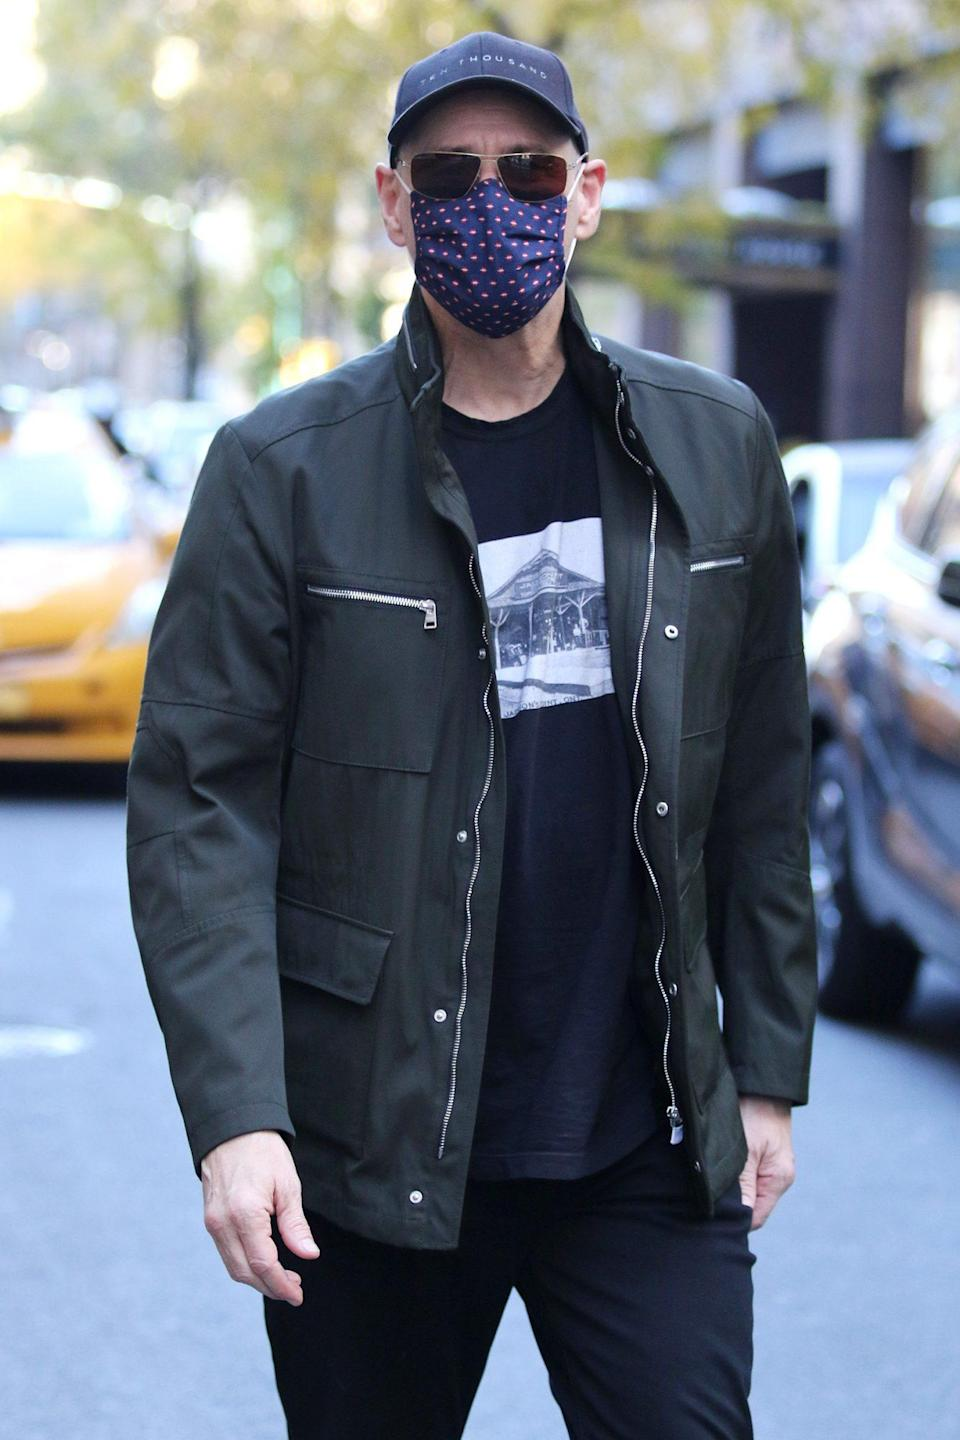 <p><i>The Mask </i>star Jim Carrey wears a face covering as he's seen heading to lunch in N.Y.C. on Sunday.</p>